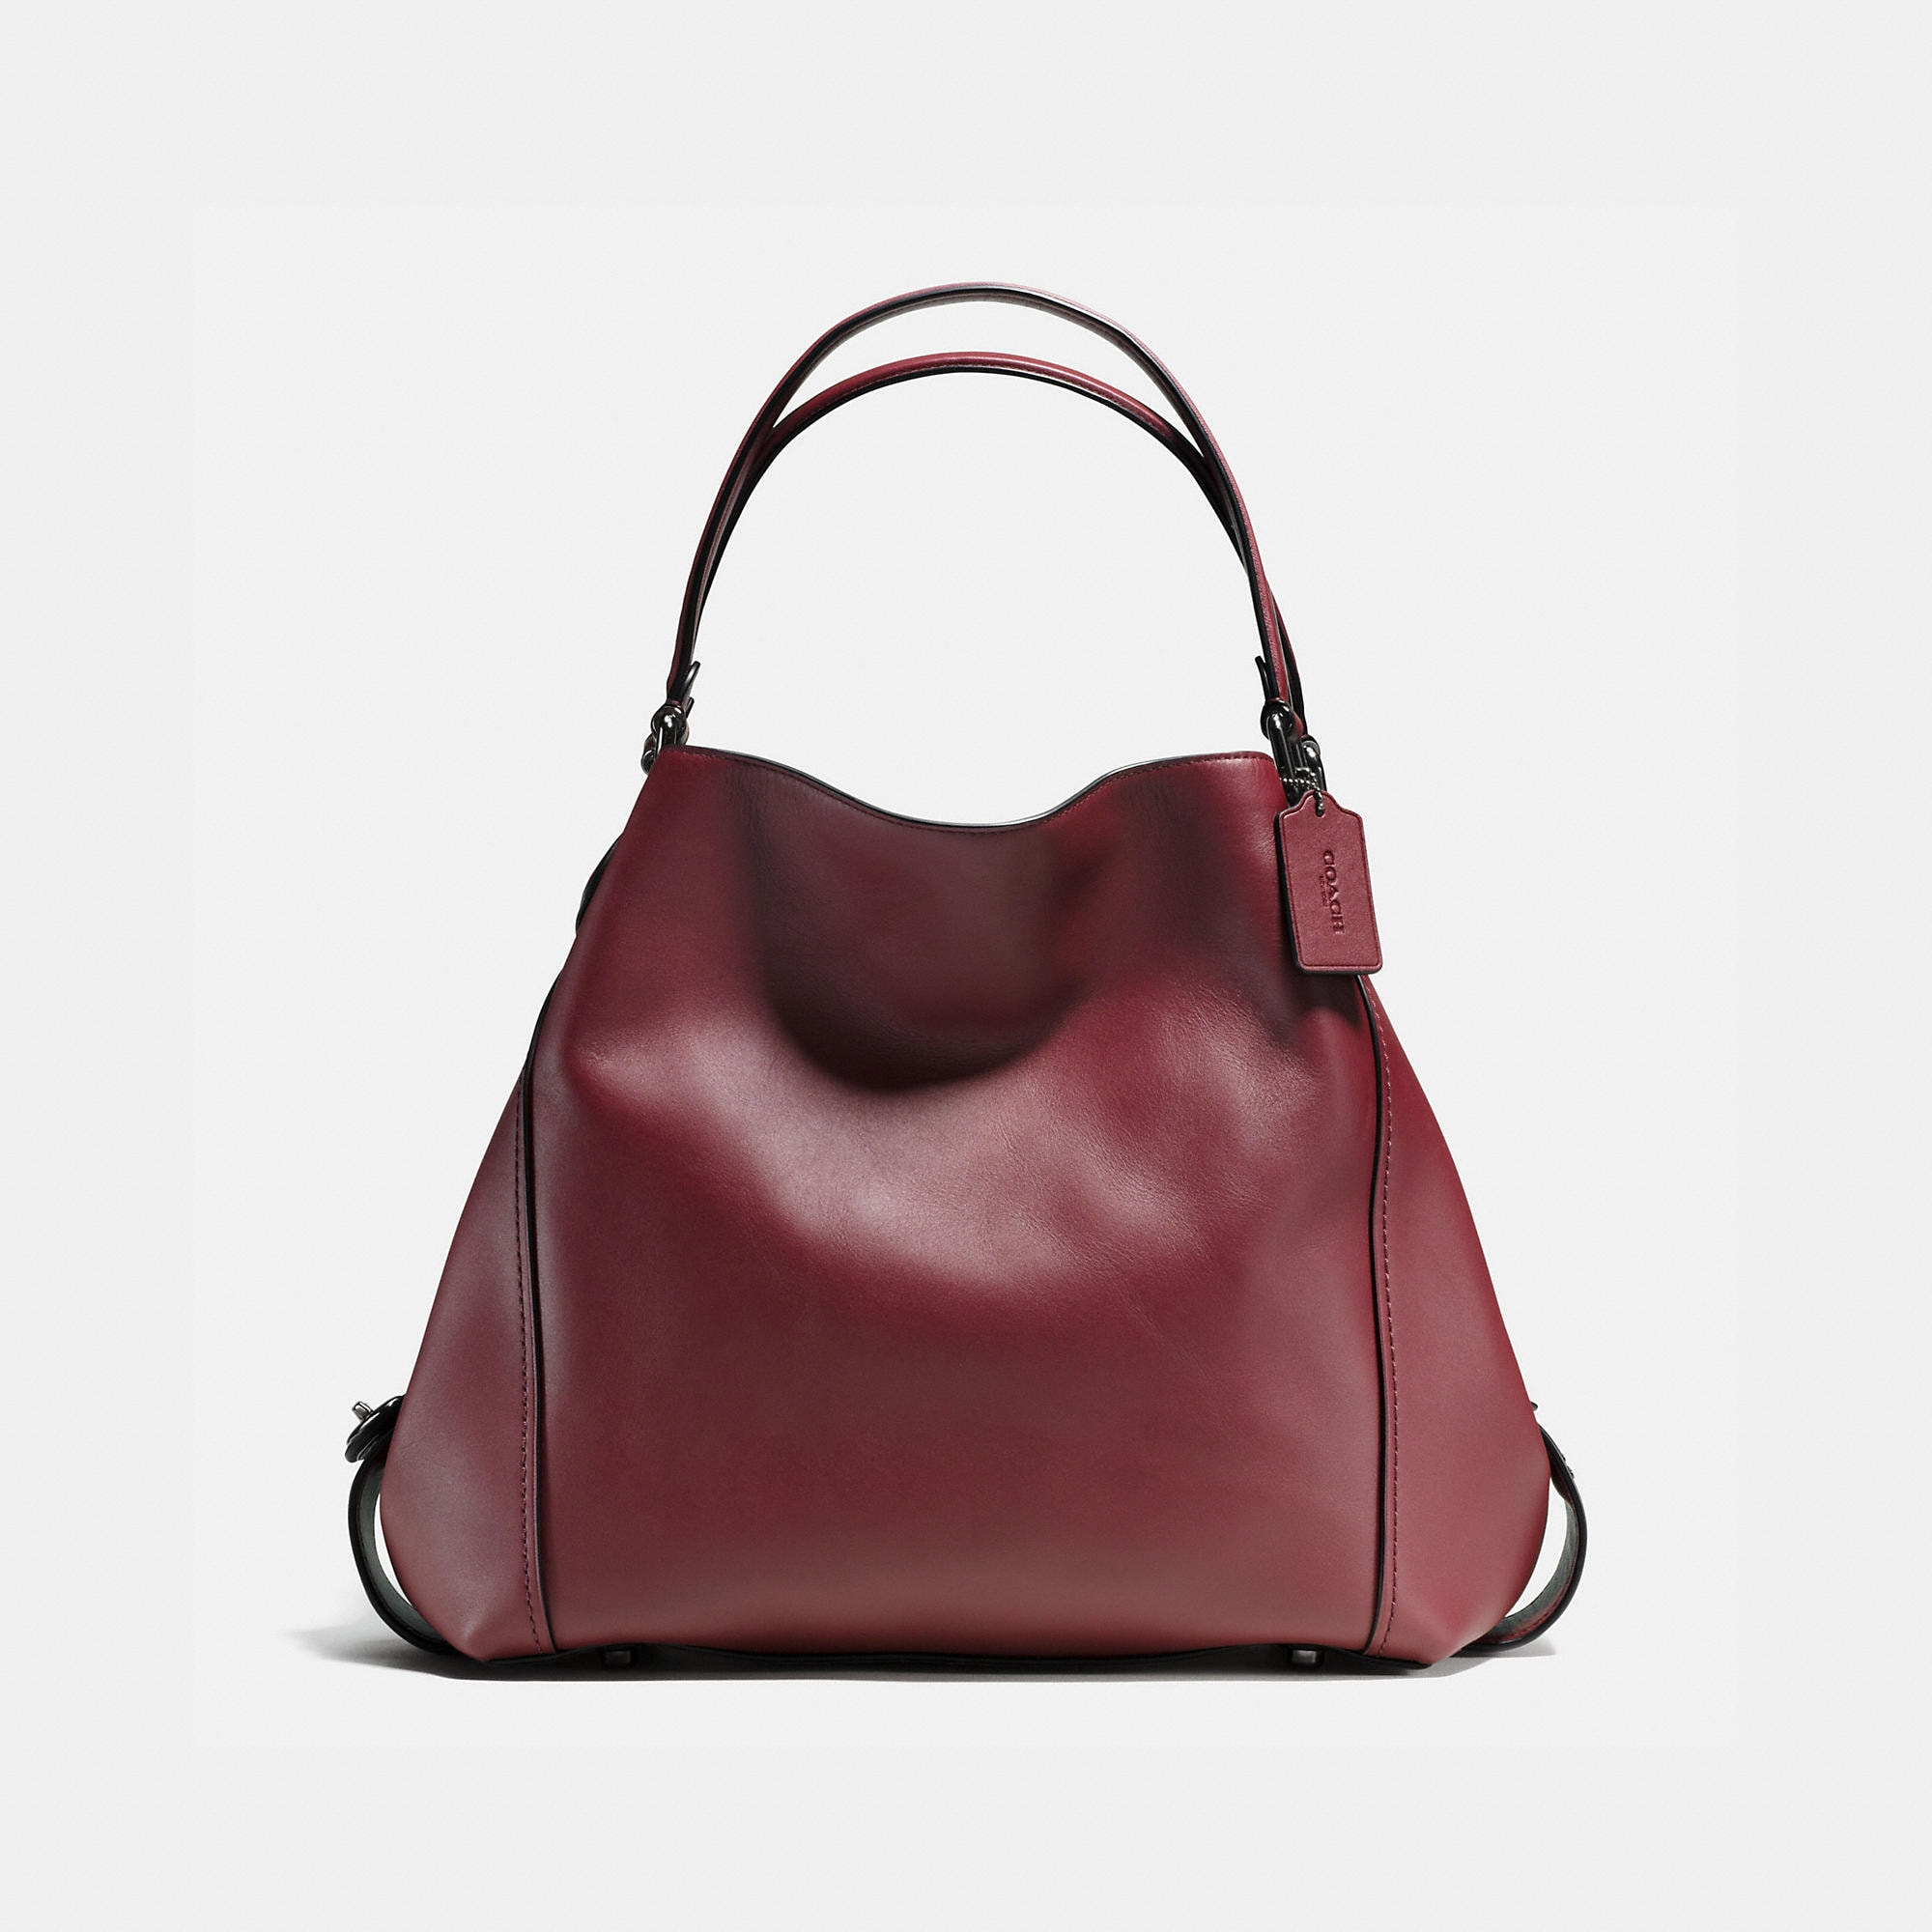 Coach Edie Shoulder Bag 42 In Glovetanned Leather